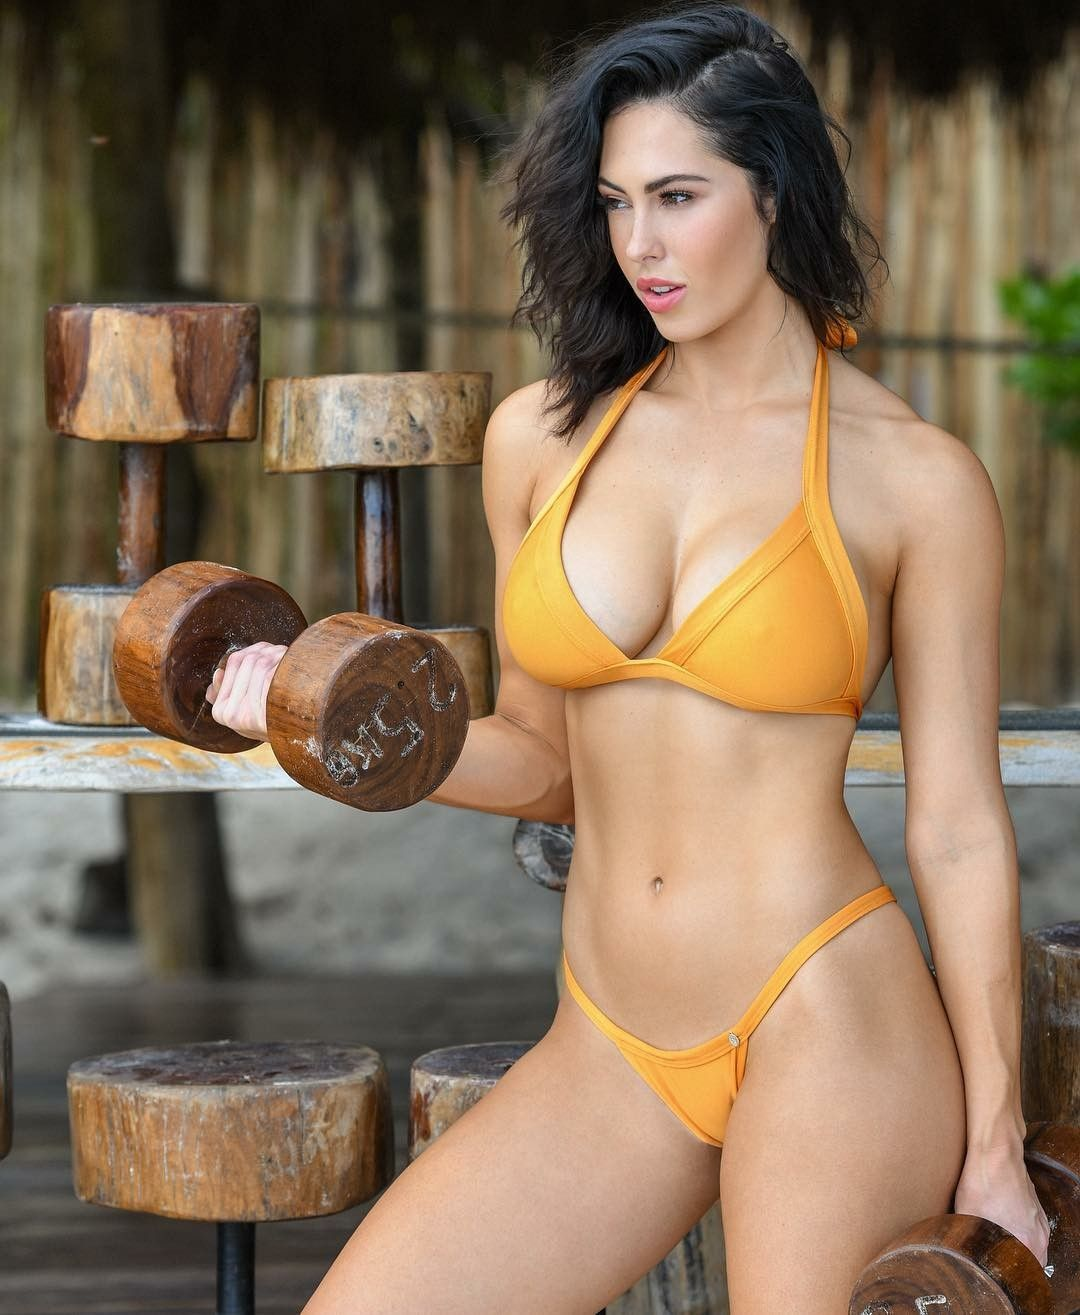 b5403f92ca137 Hope Beel at Tulum Jungle Gym | Health & Fitness in 2019 | Bikini ...